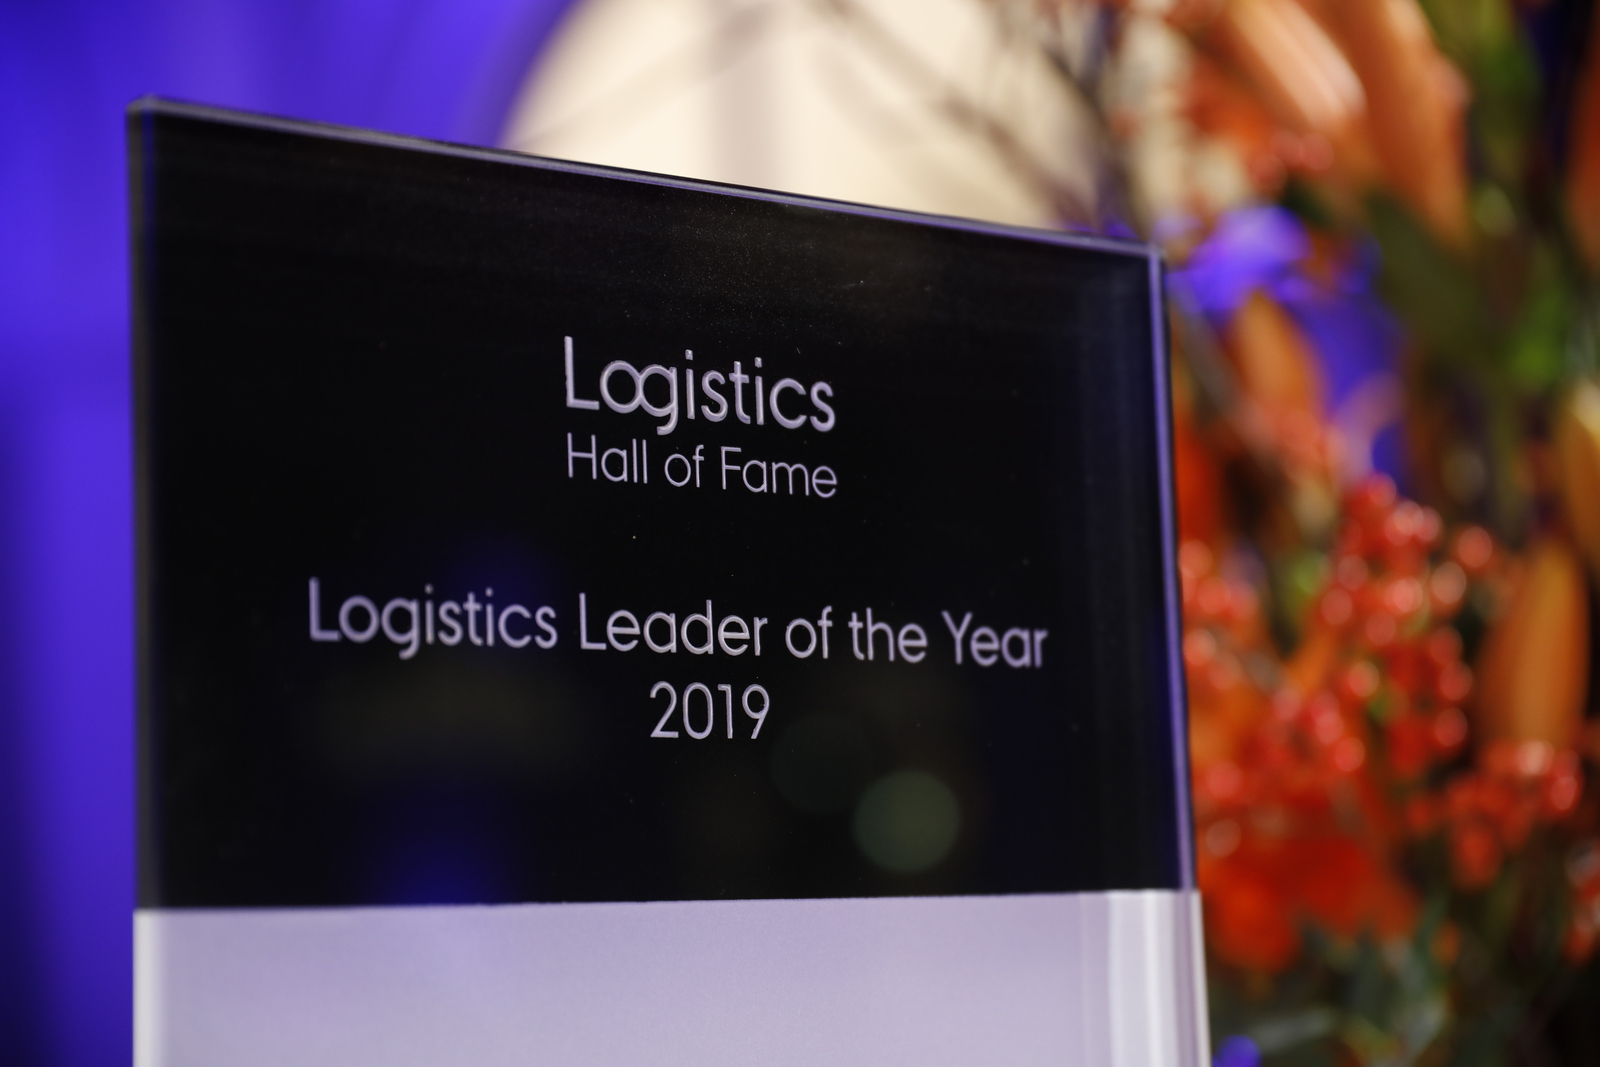 Logistics Hall of Fame: Deadline for proposals is May 8th